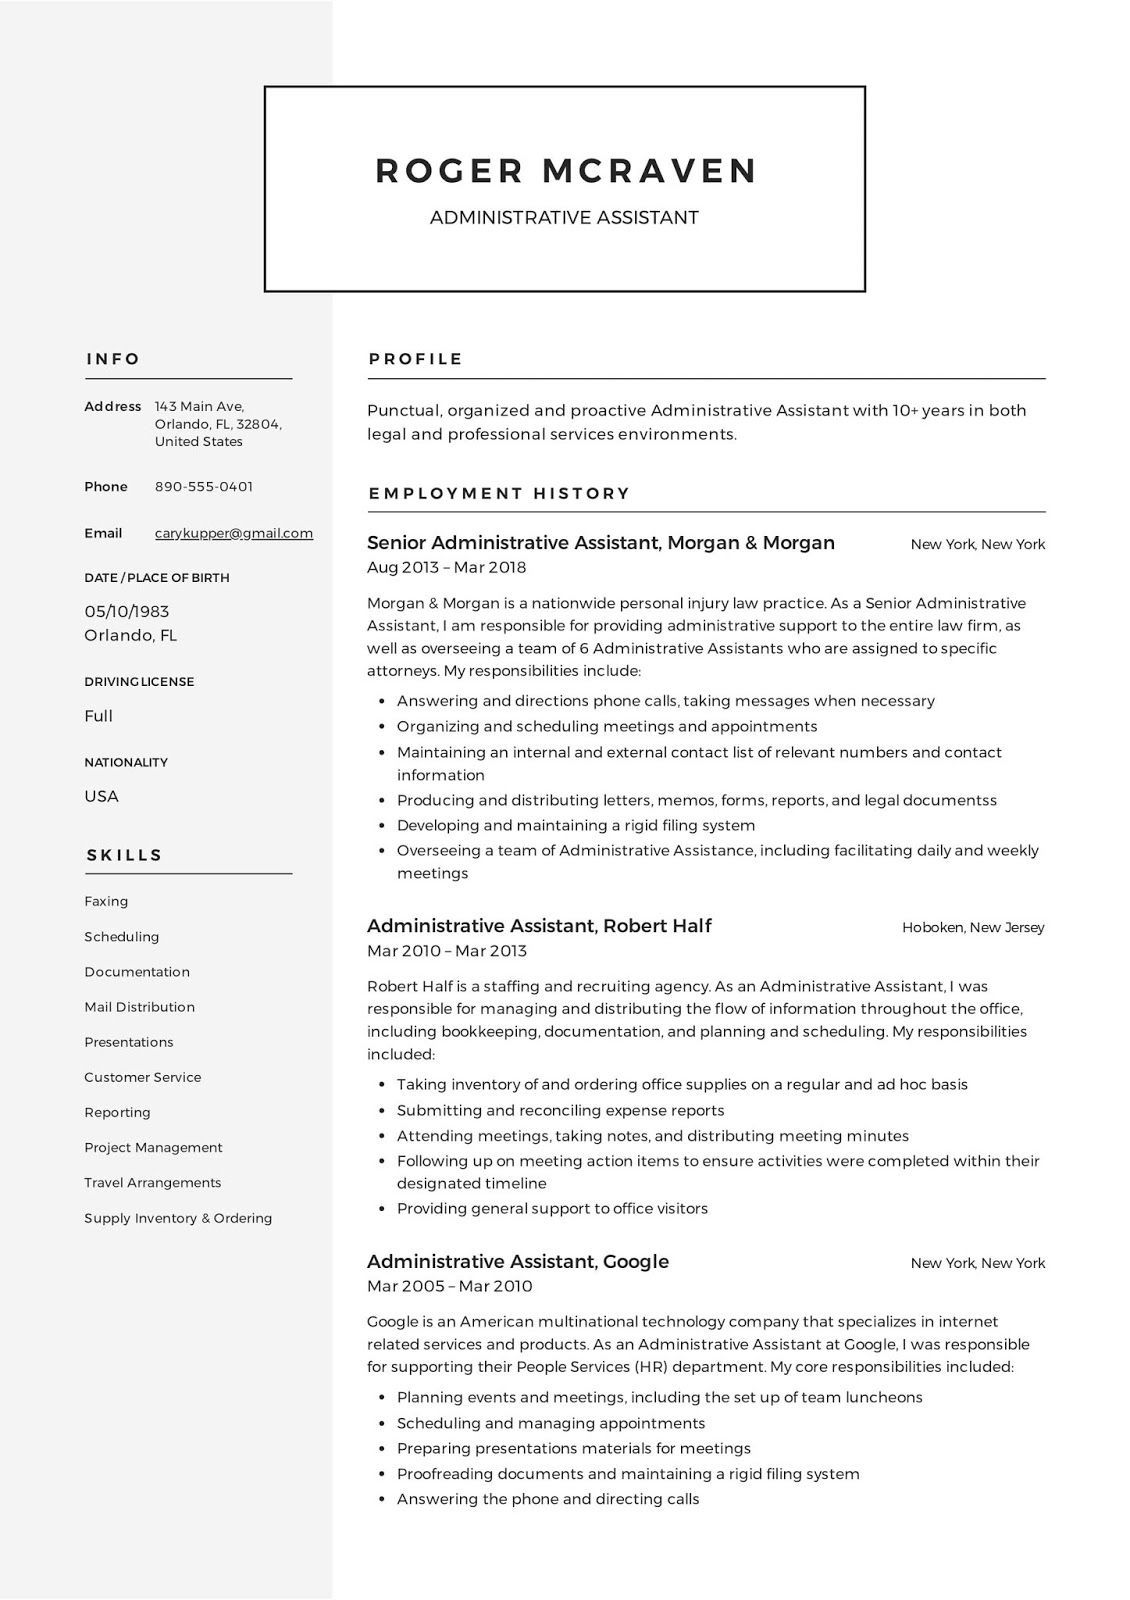 administrative resume template free microsoft word assistant event planner office manager Resume Administrative Assistant Resume Samples 2020